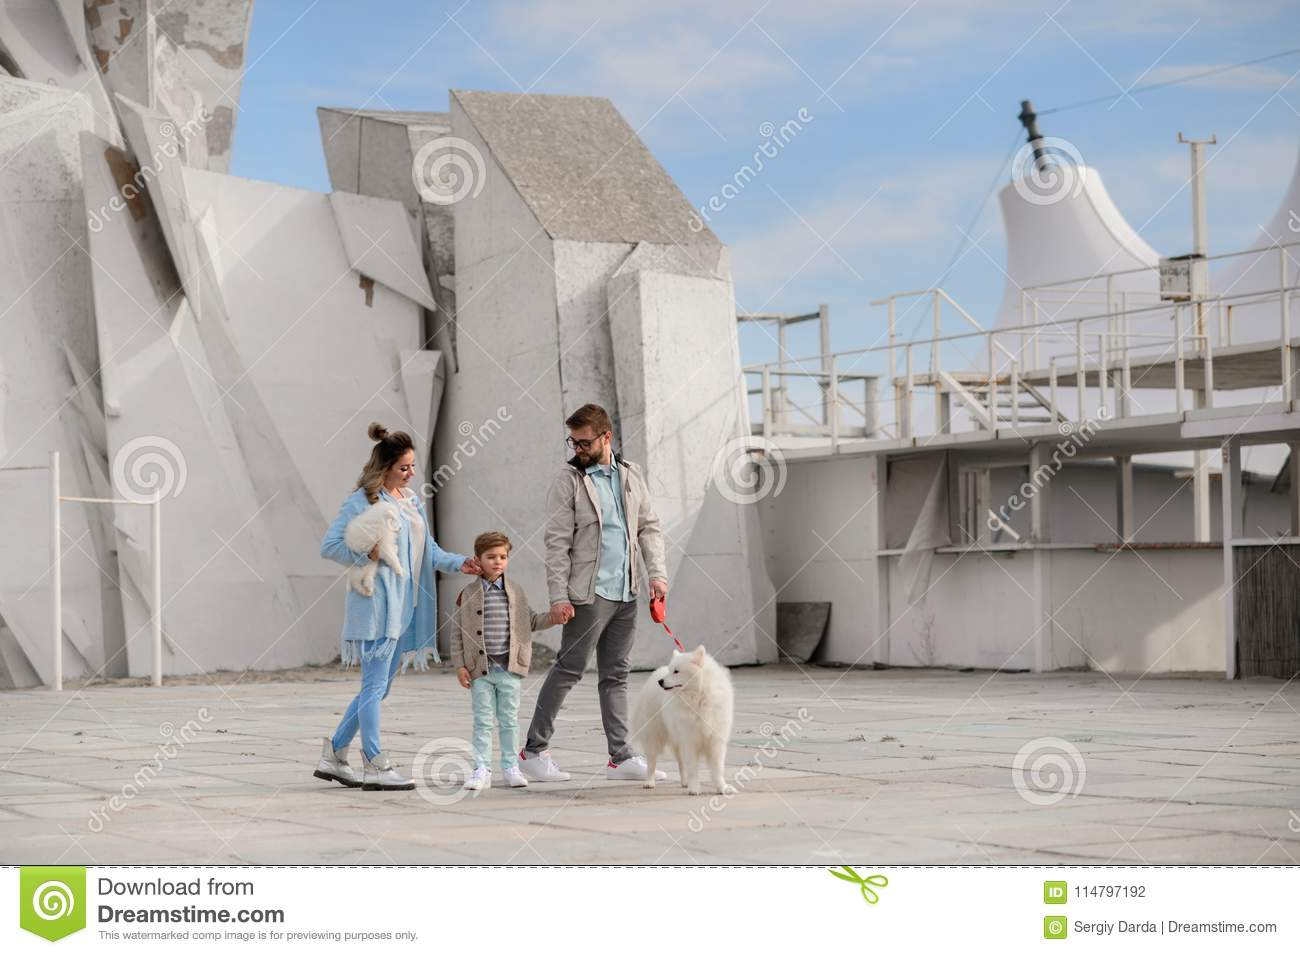 The family walks with a dog.